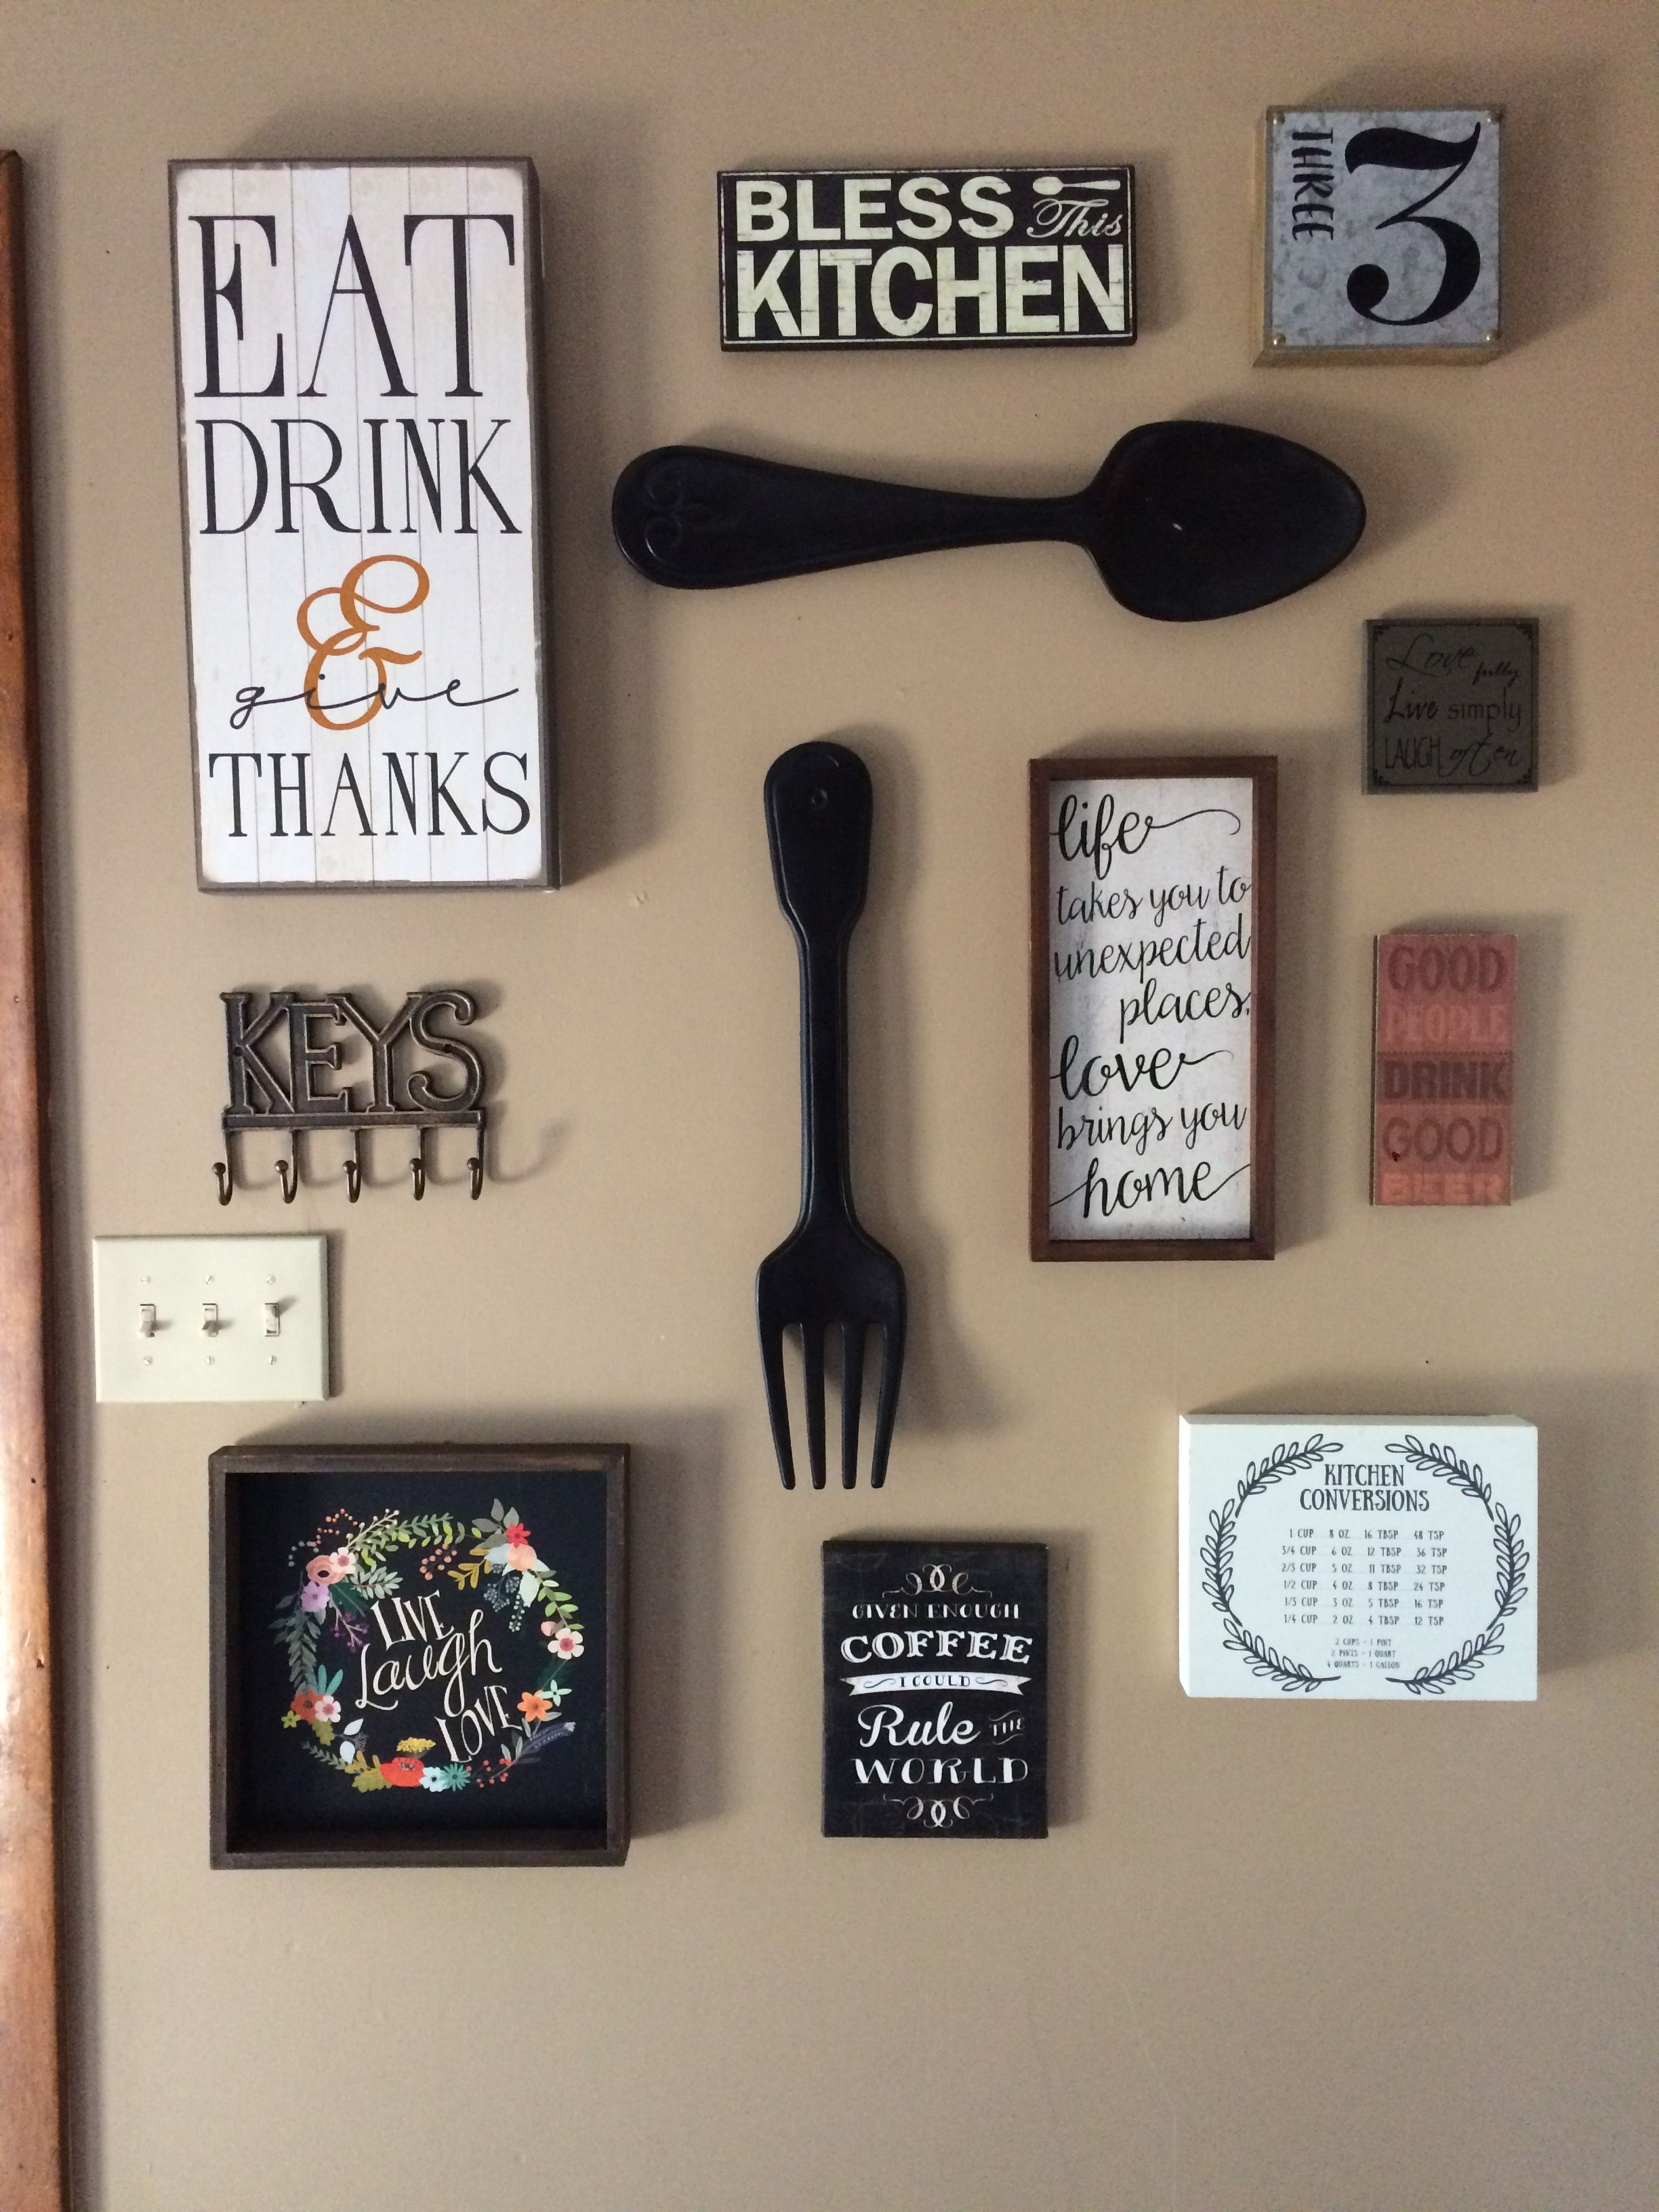 My kitchen gallery wall  All decor from hobby lobby and Ross     My kitchen gallery wall  All decor from hobby lobby and Ross  Completed the  project in 1 hour  It turned out amazing   apartment decor themes